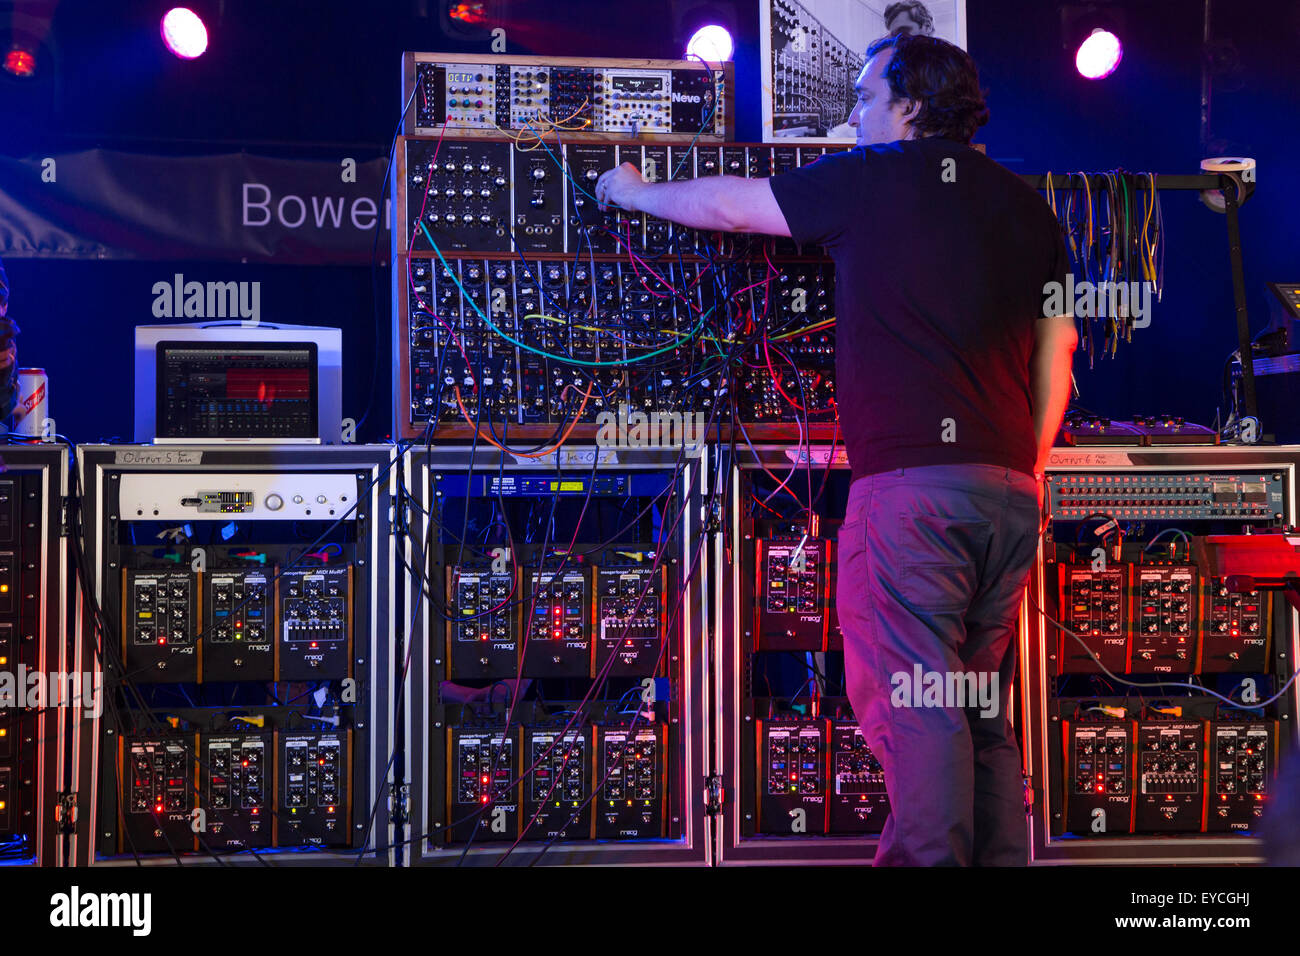 Womad Festival in Wiltshire, UK. 24th July, 2015. A rare appearance of an original Moog synthesiser creates a wall - Stock Image